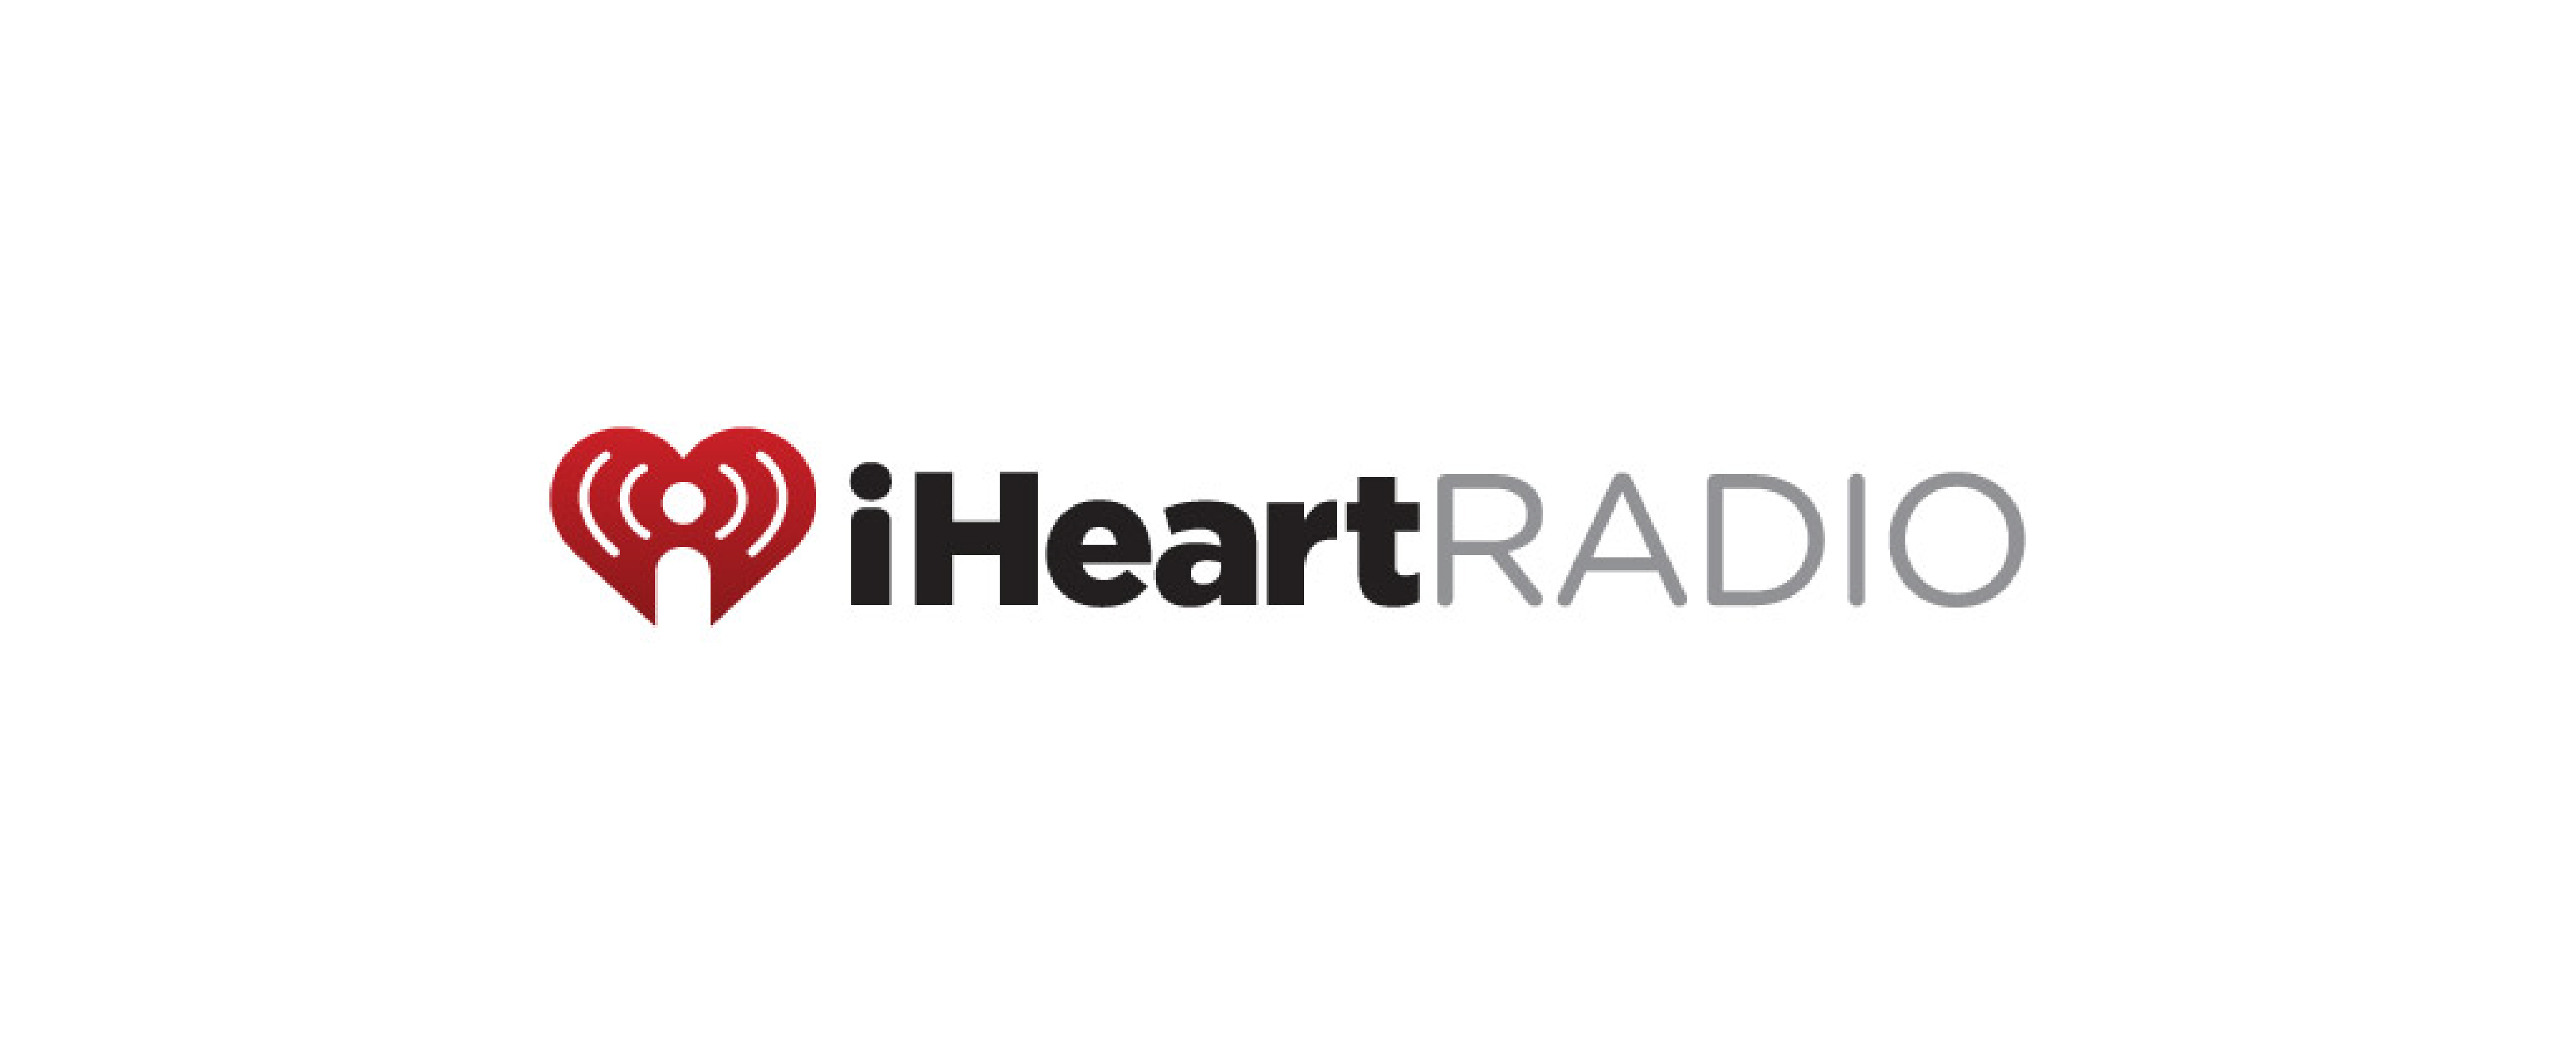 We were thrilled to share Lights of Love on iHeart Radio